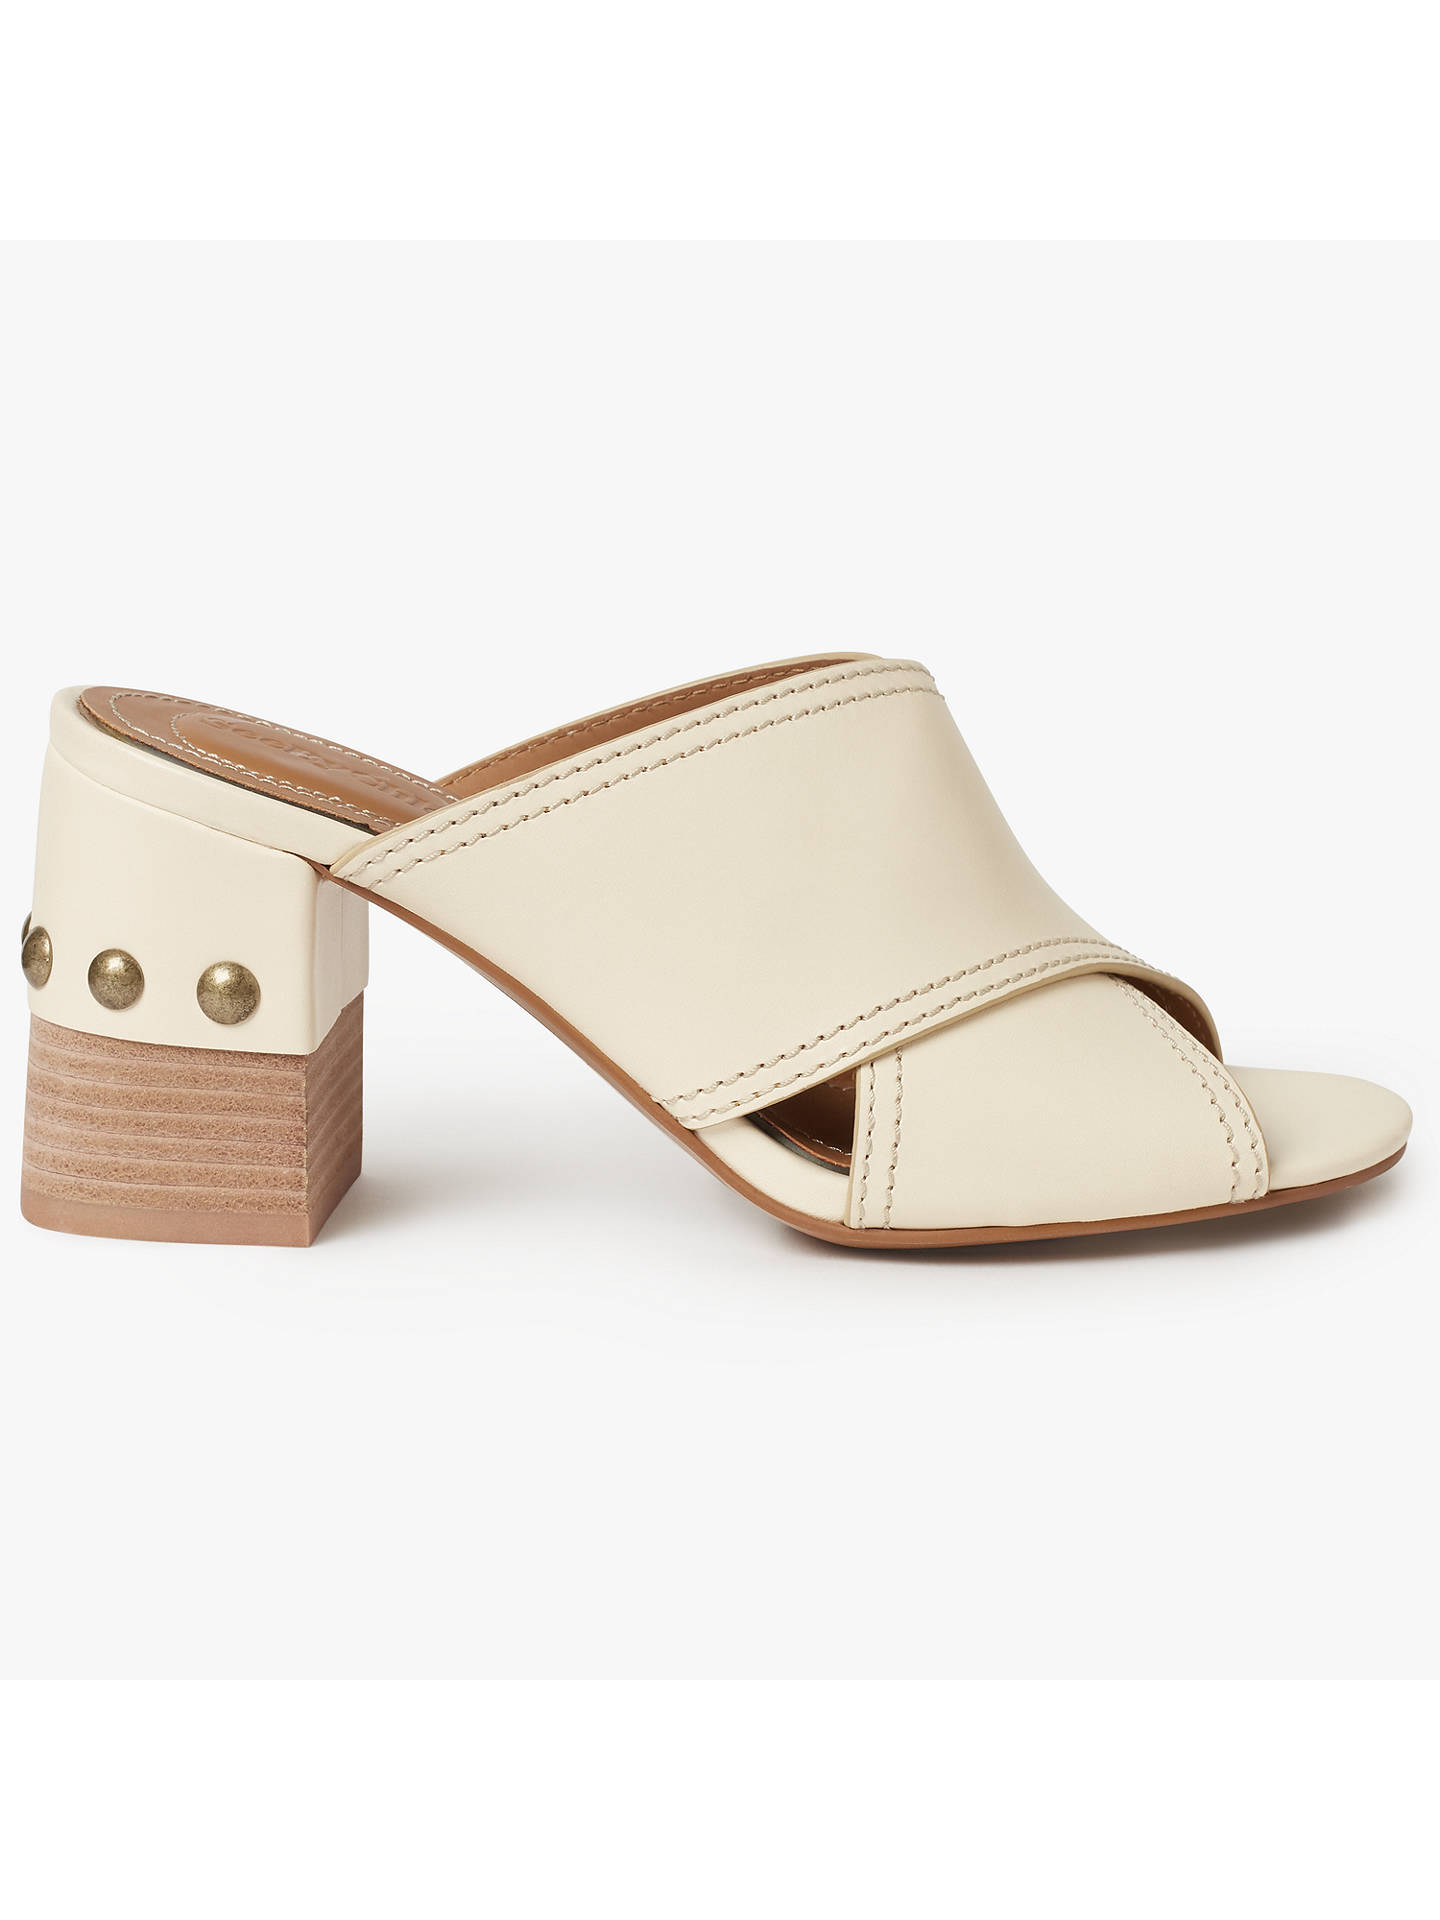 f5e61558f552 Buy See by Chloé Cross Strap Studded Block Heel Mules